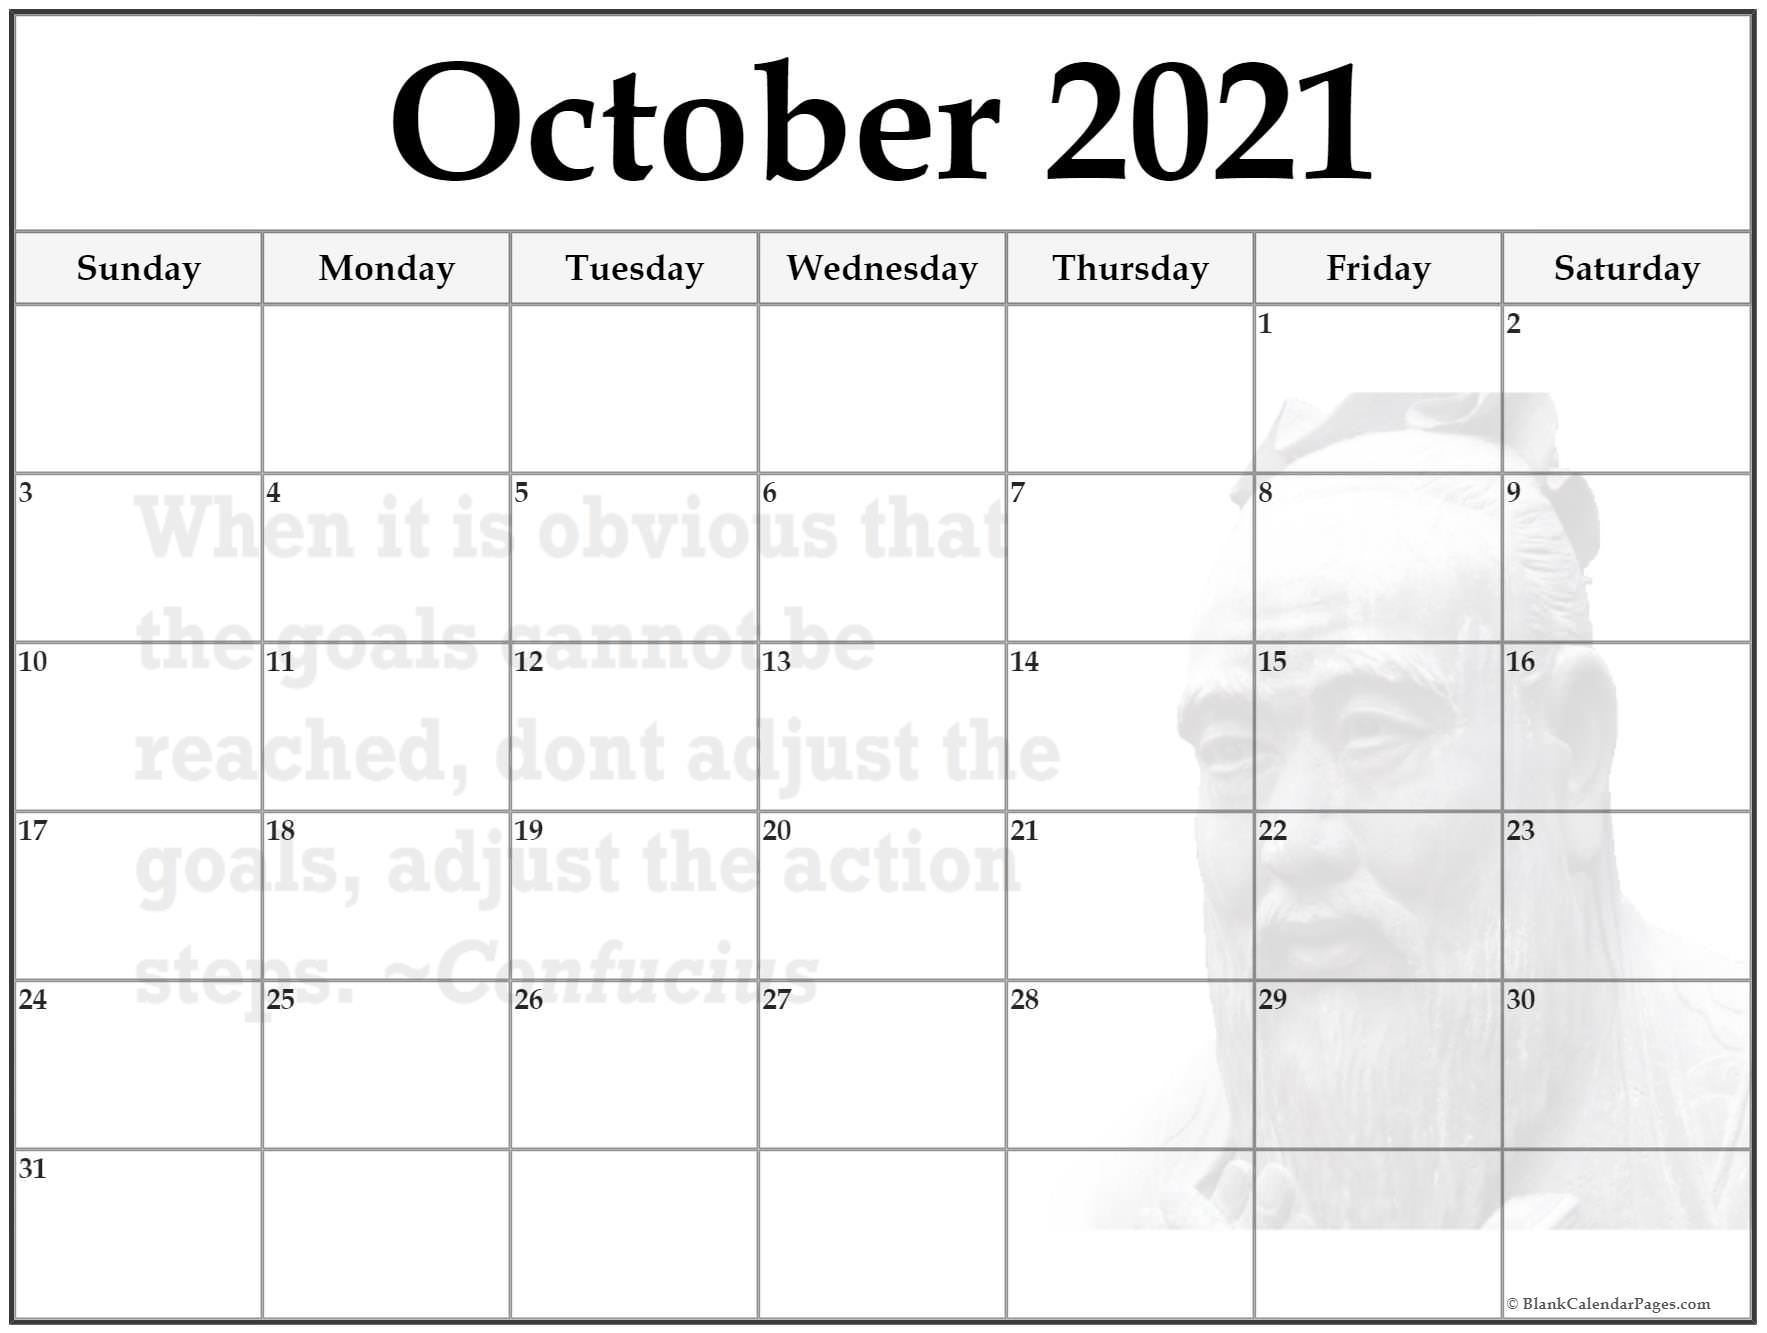 October 2020 monthly calendar template. When it is obvious that the goals cannot be reached, don't adjust the goals, adjust the action steps ~Confucius